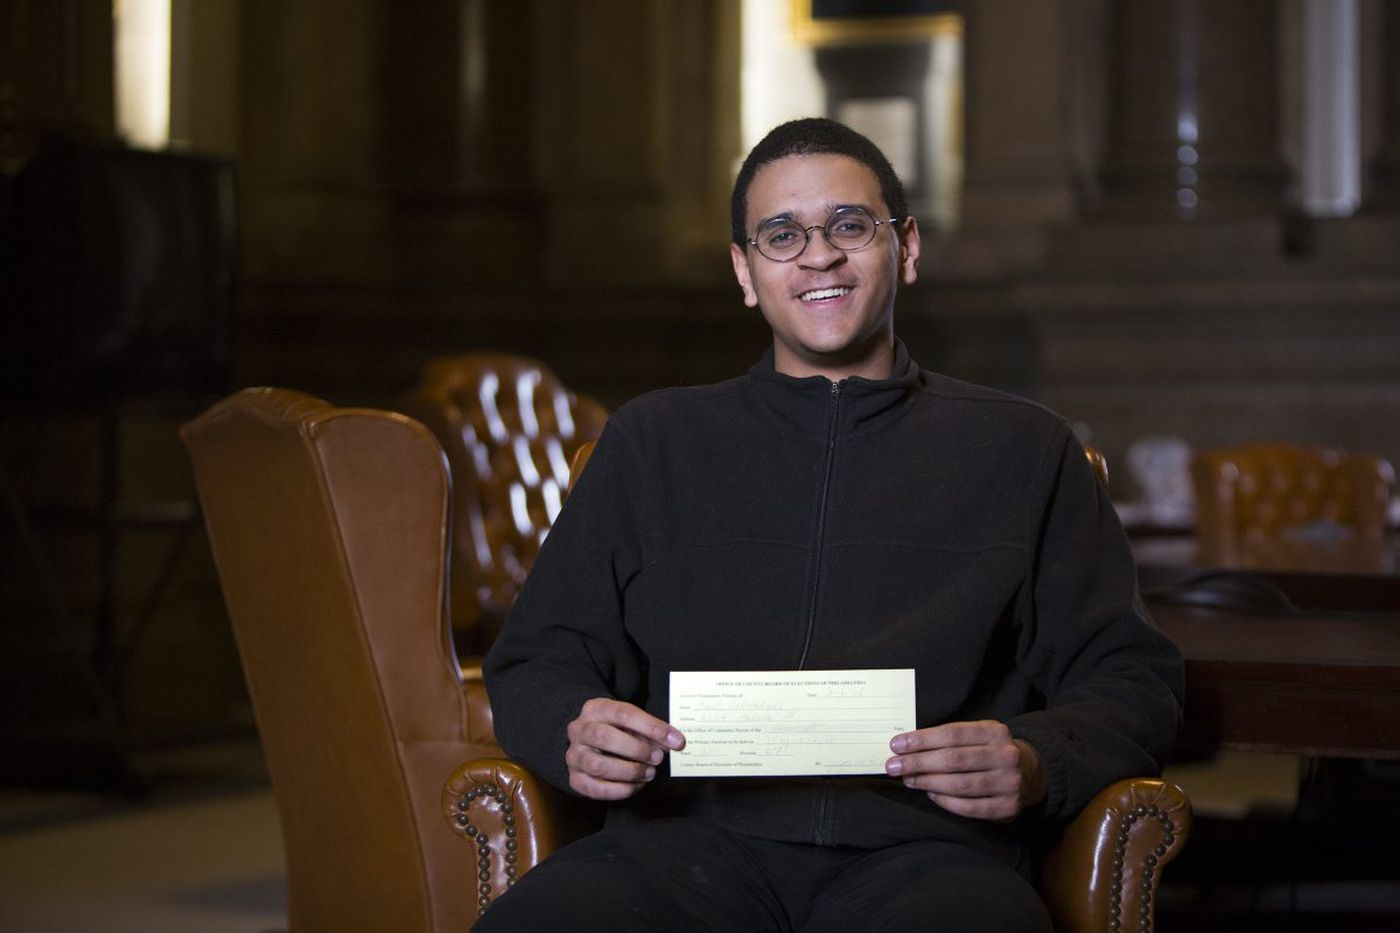 This high school senior is one of Philadelphia's newest politicians